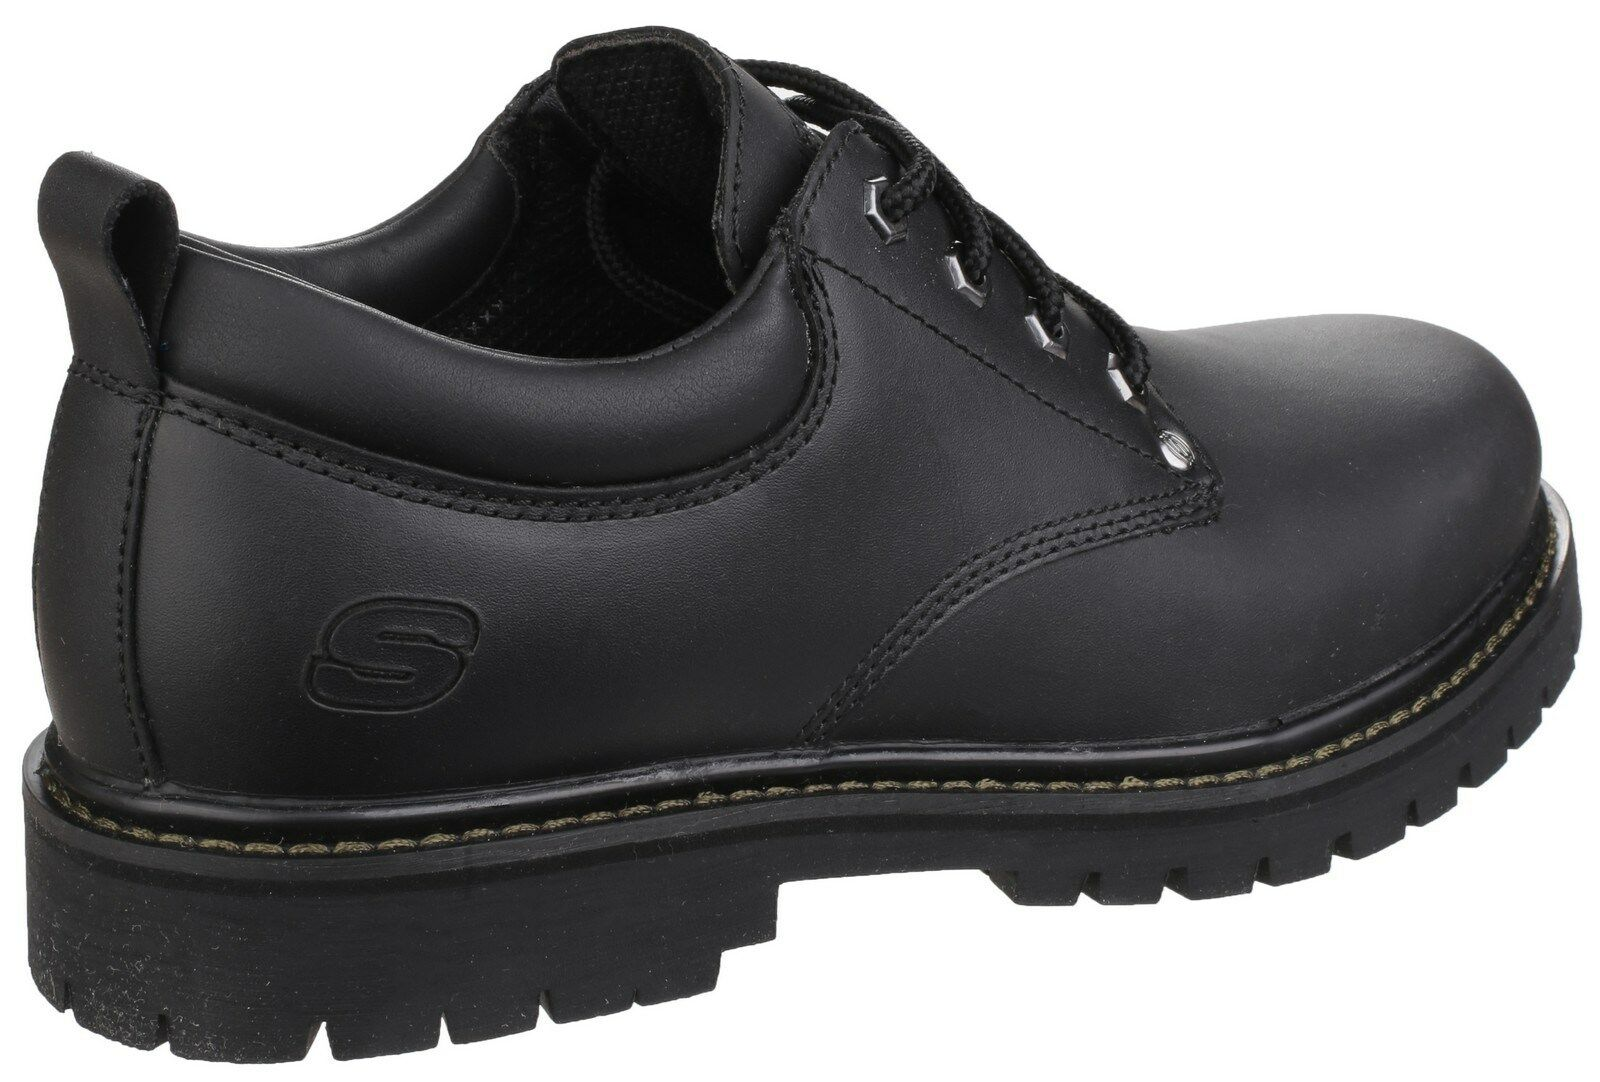 Skechers Tom Cats Mens Casual Oxford